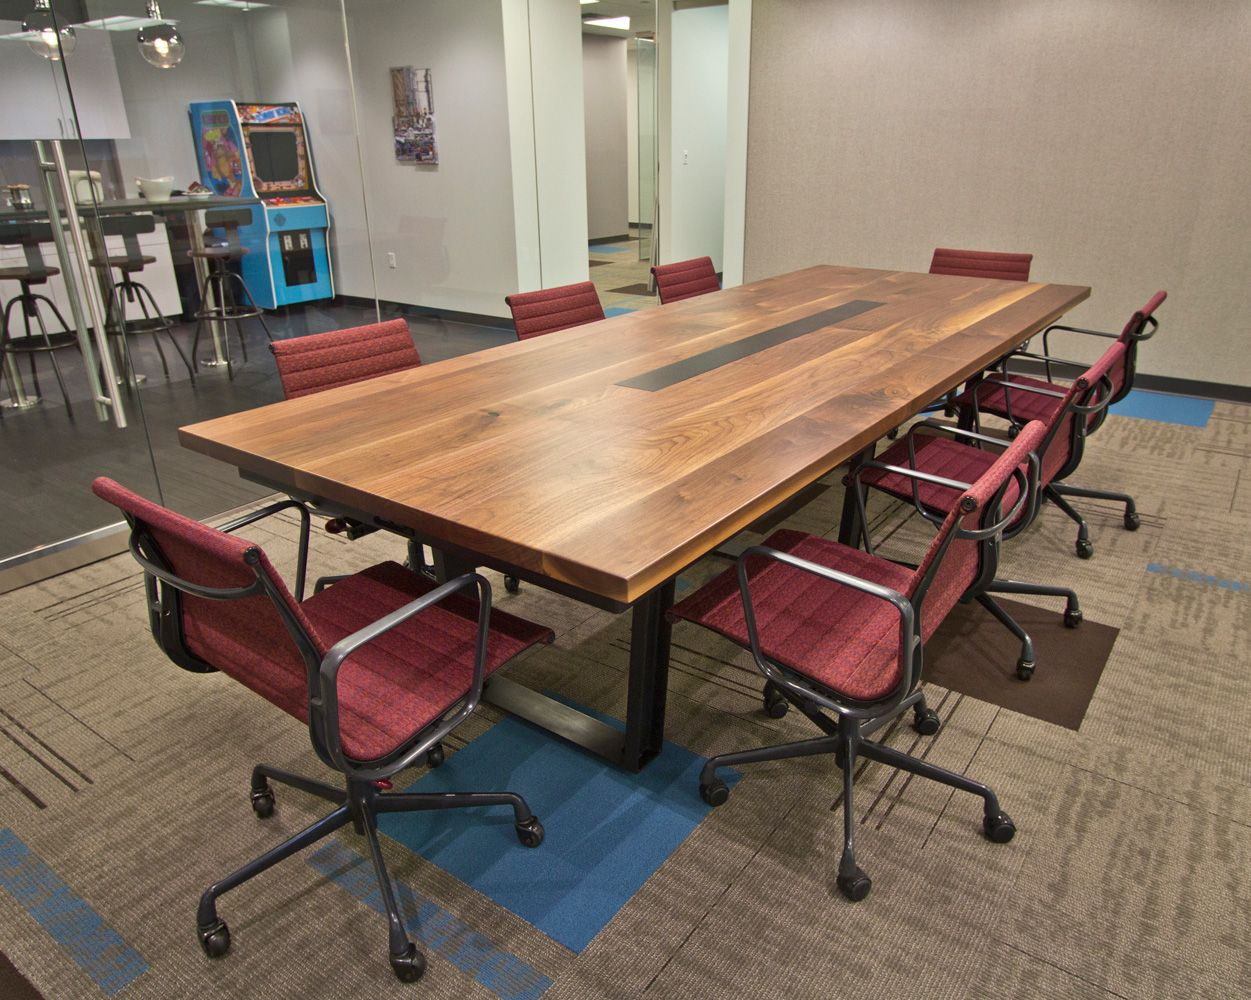 Mission Impossible Black Walnut Conference Room Table By Rstco